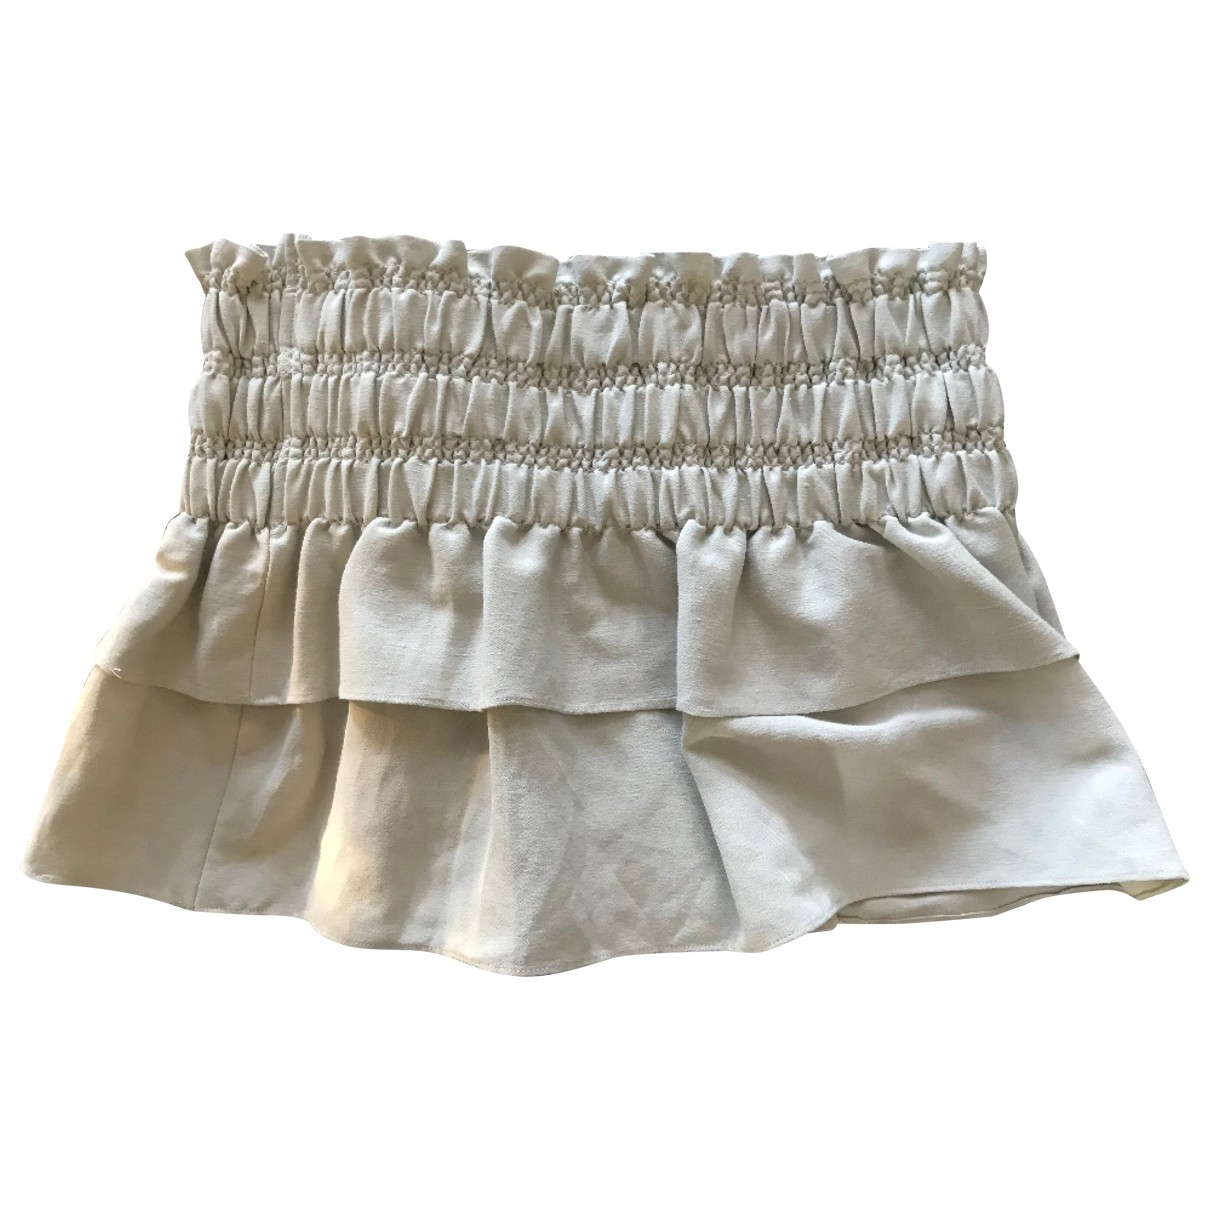 Isabel Marant Etoile \N Ecru Linen skirt for Women 38 FR